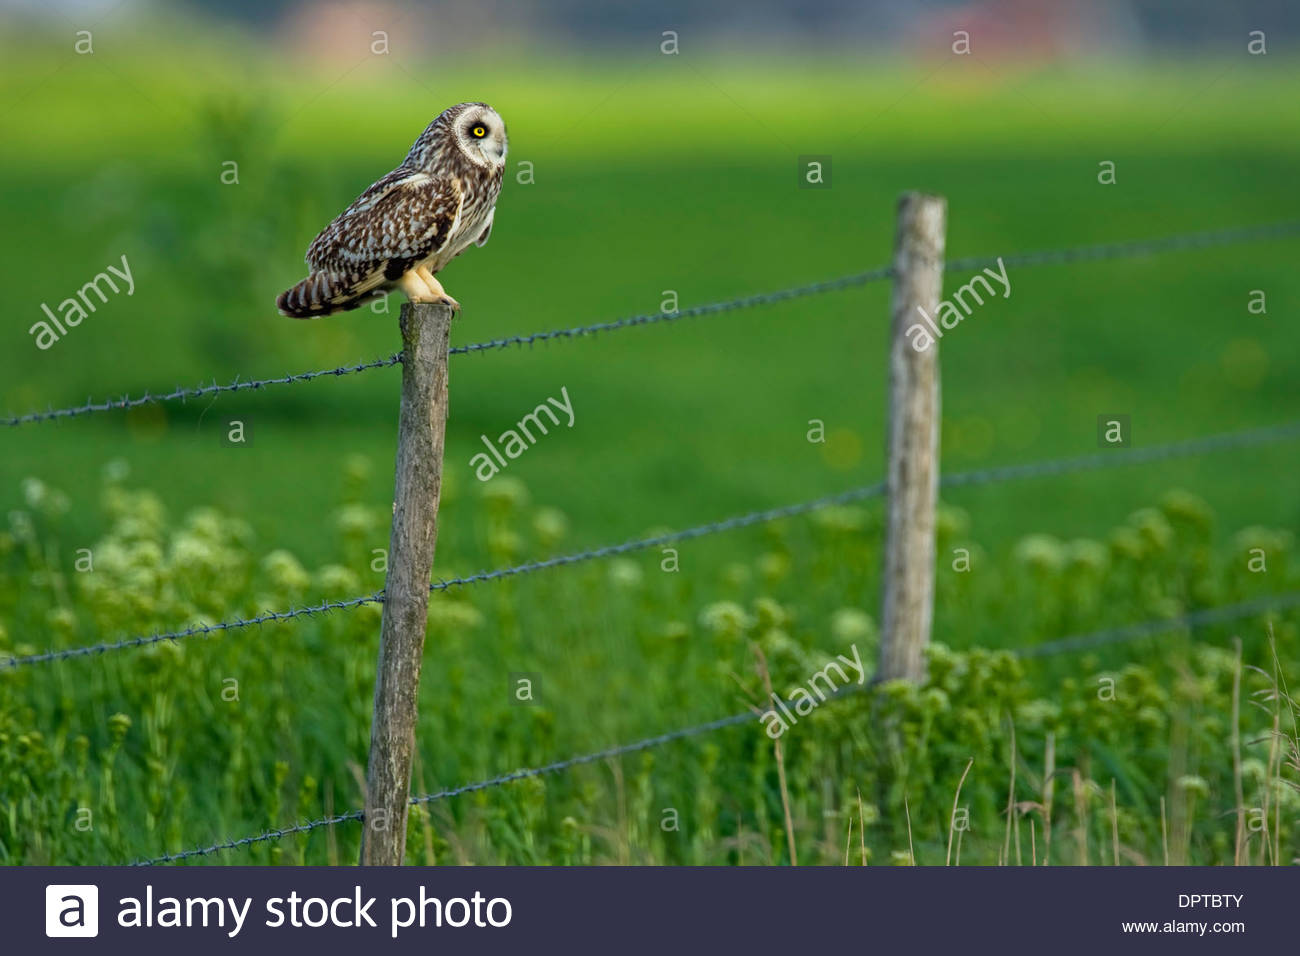 Short-eared Owl (Asio flammeus) perched on fence post along meadow - Stock Image